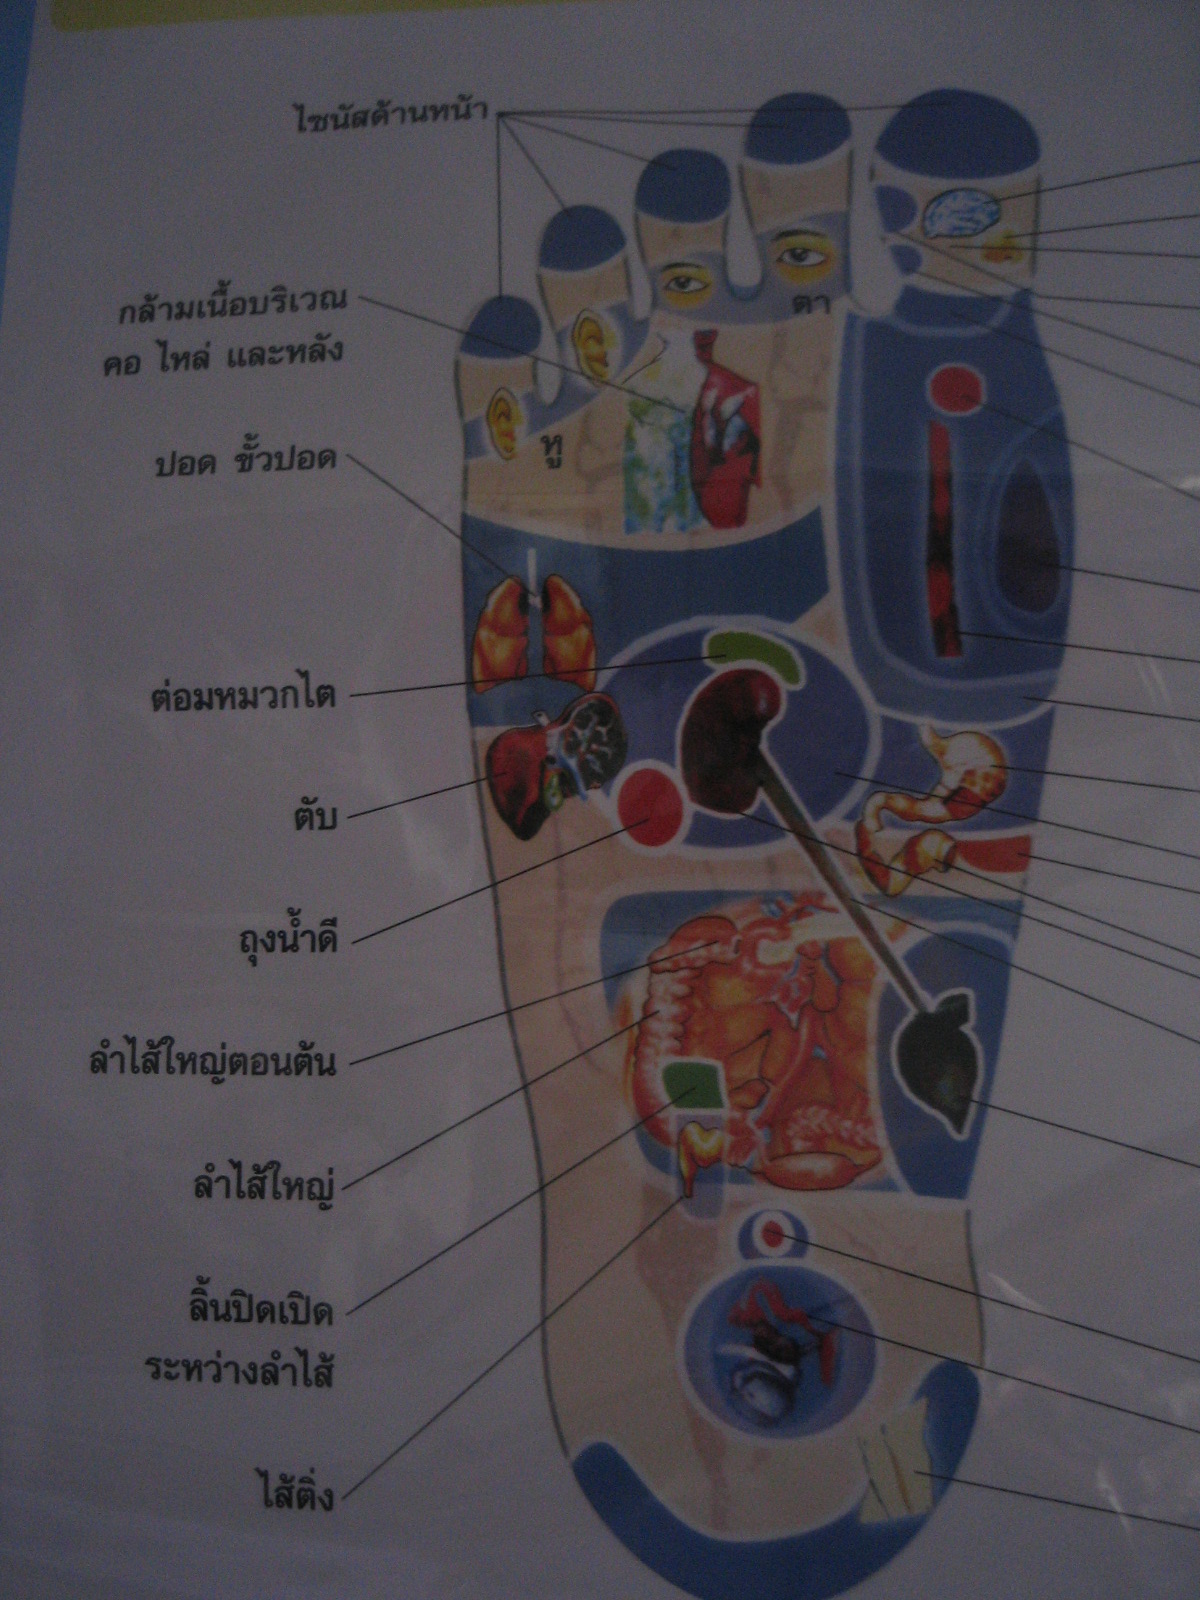 LeftFoot - Reflexology Chart of Various Parts of the Feet